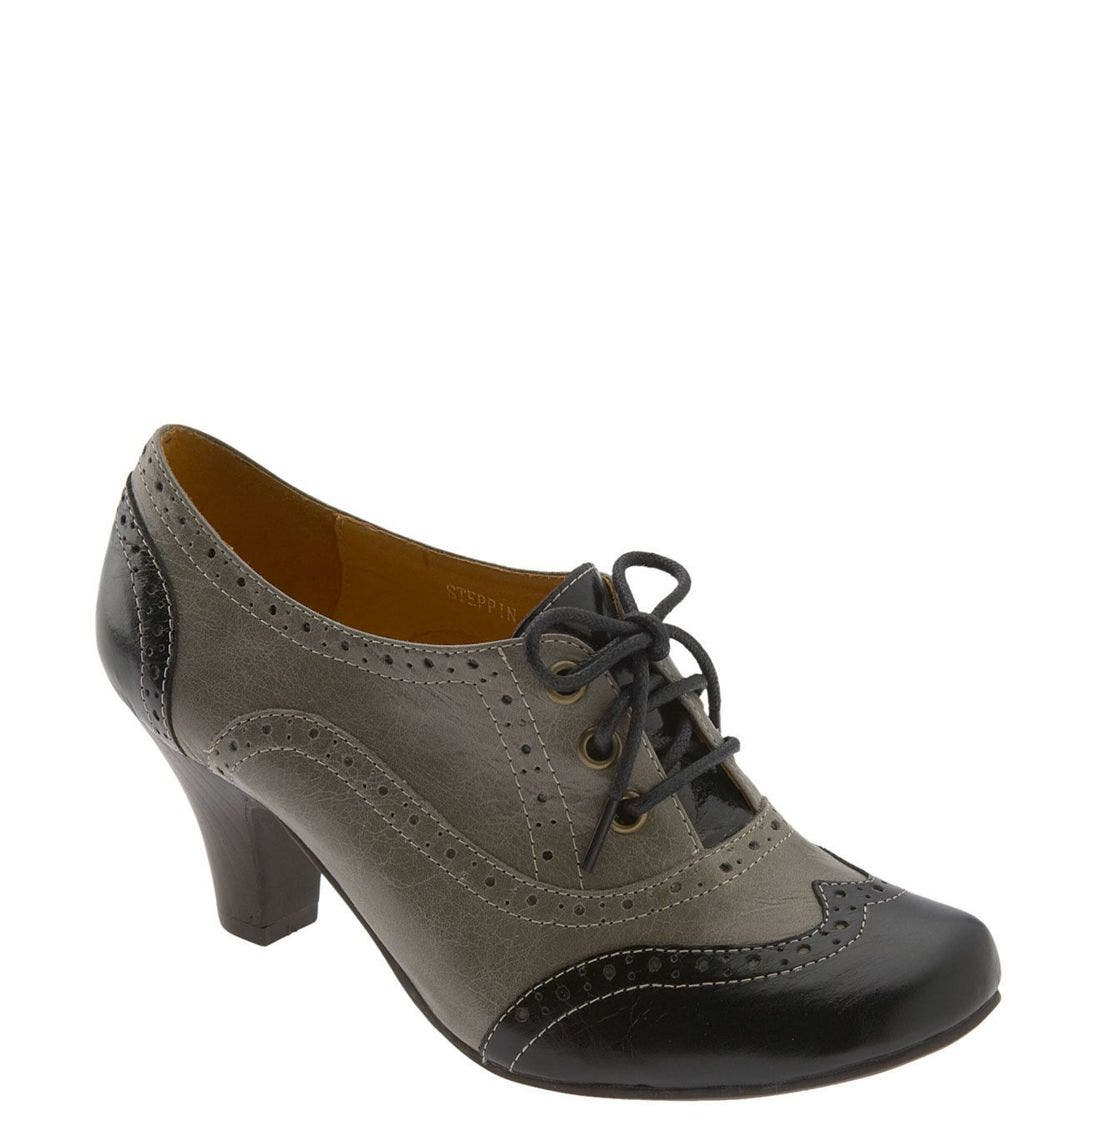 Alternate Image 1 Selected - Jeffrey Campbell 'Steppin' Oxford